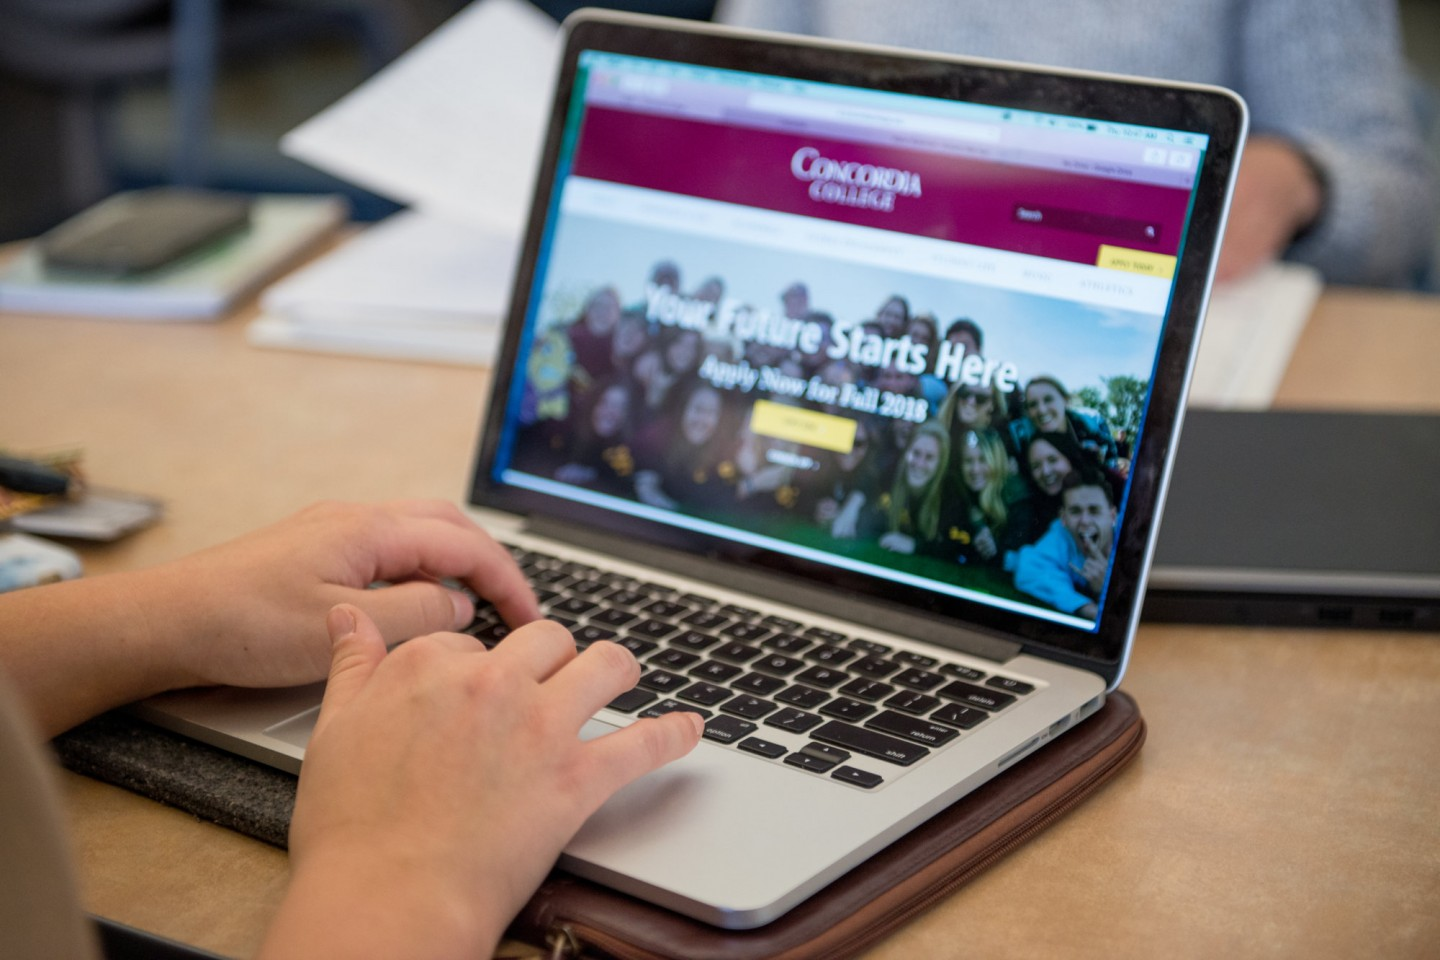 Close up of hands typing on laptop with Concordia website open